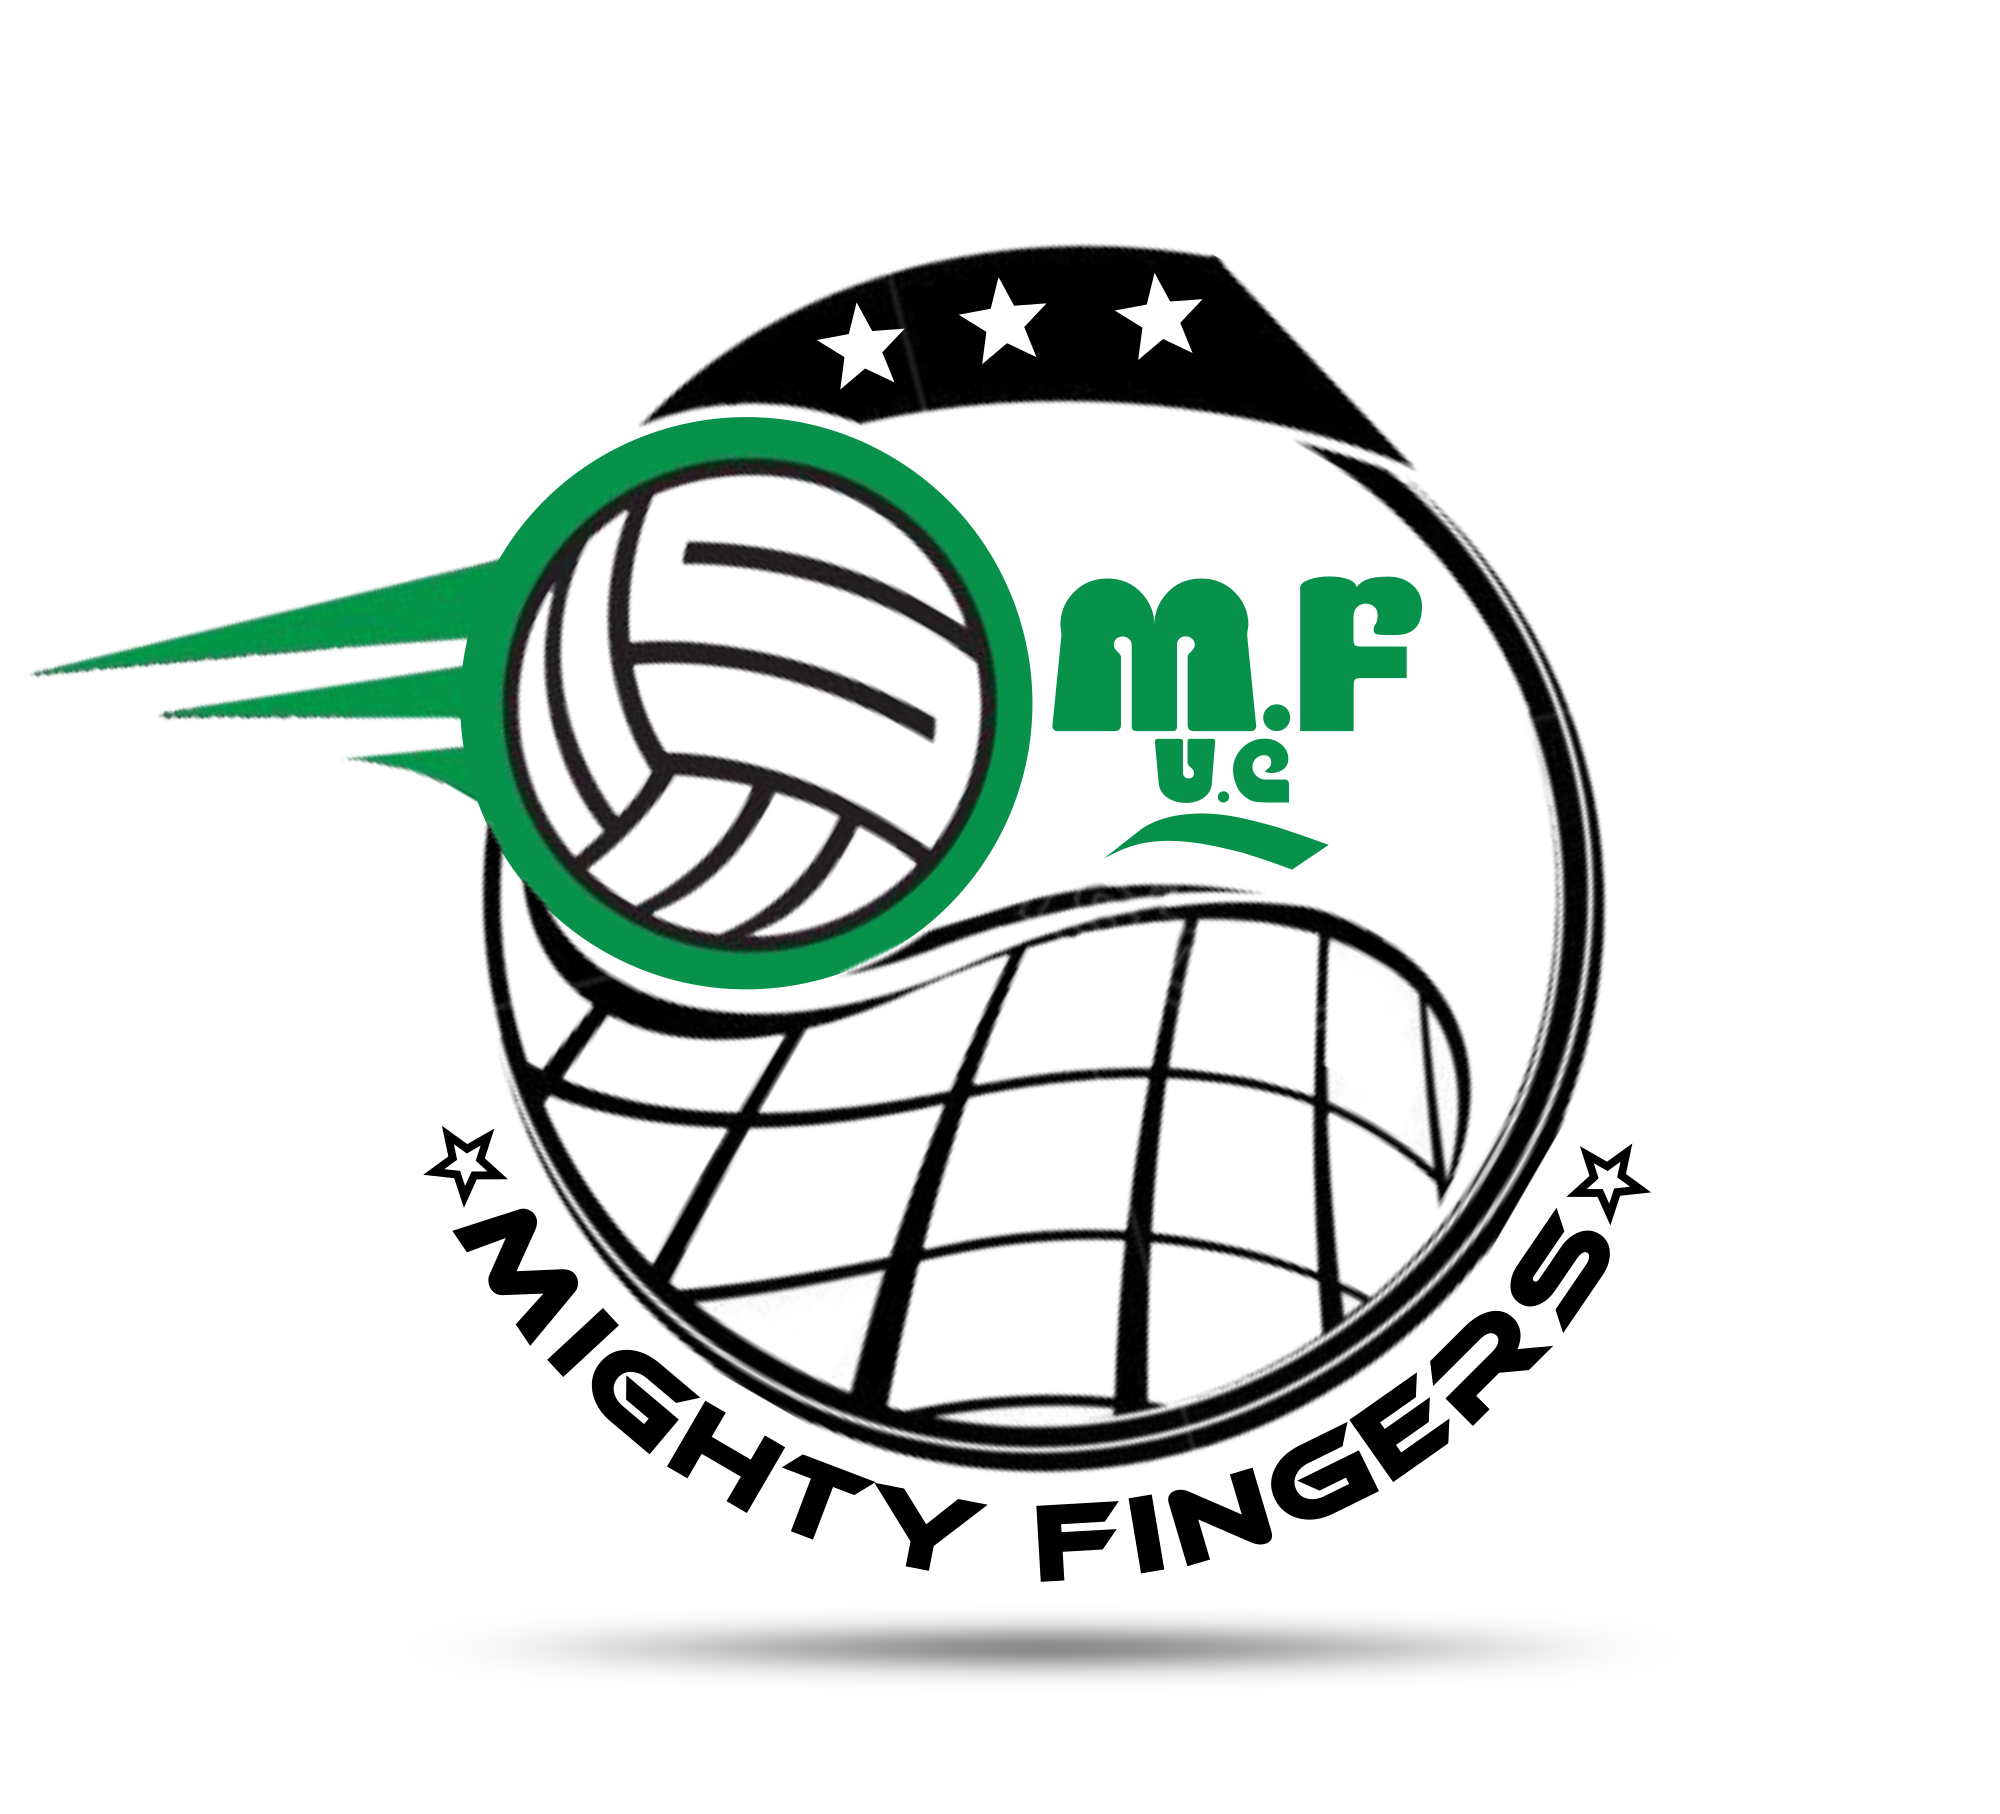 Official Logo Of Wa Mighty Fingers Volleyball Club Designed By 7graffix Club Design Printing Services Branding Services